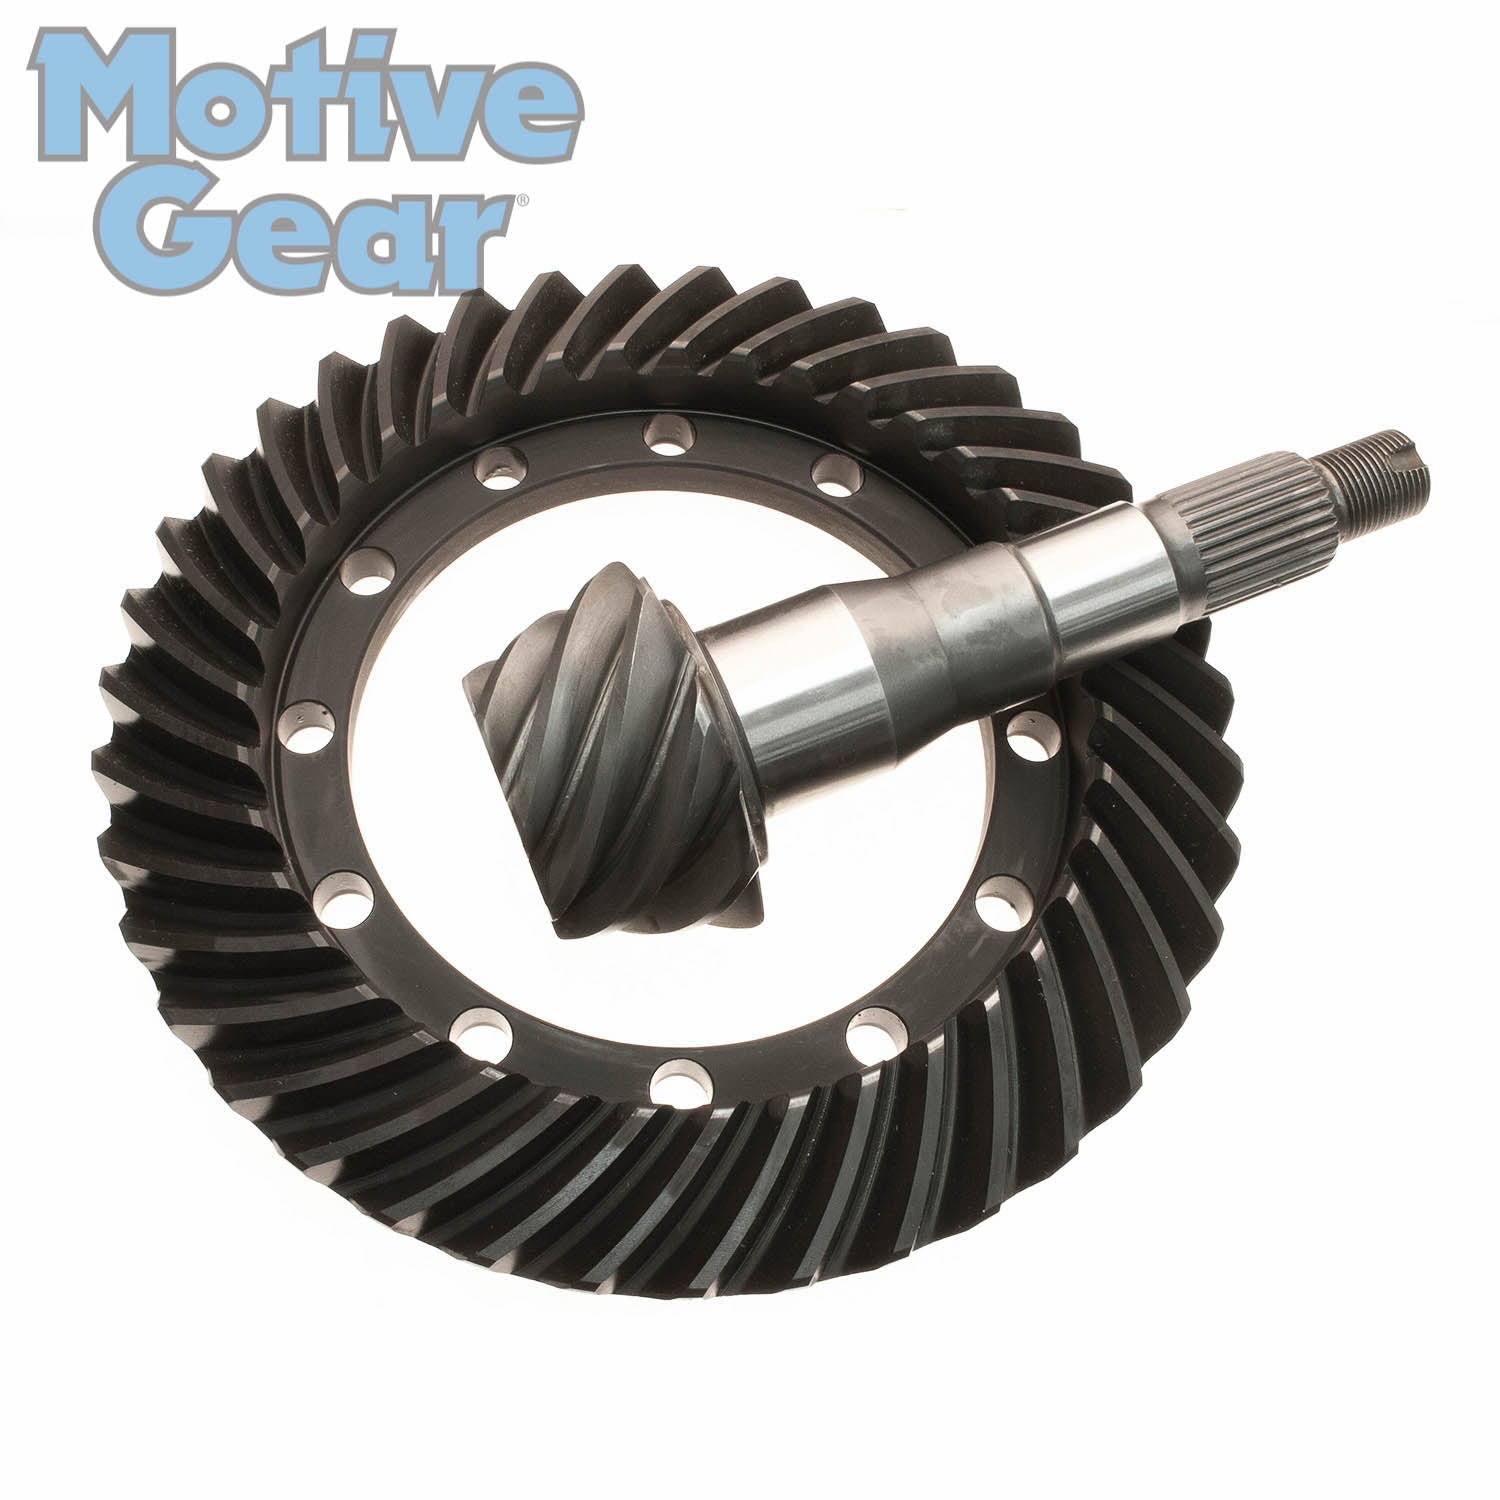 Toyota 9.5 Land Cruiser Motive Gear Ring and Pinion Gear Set